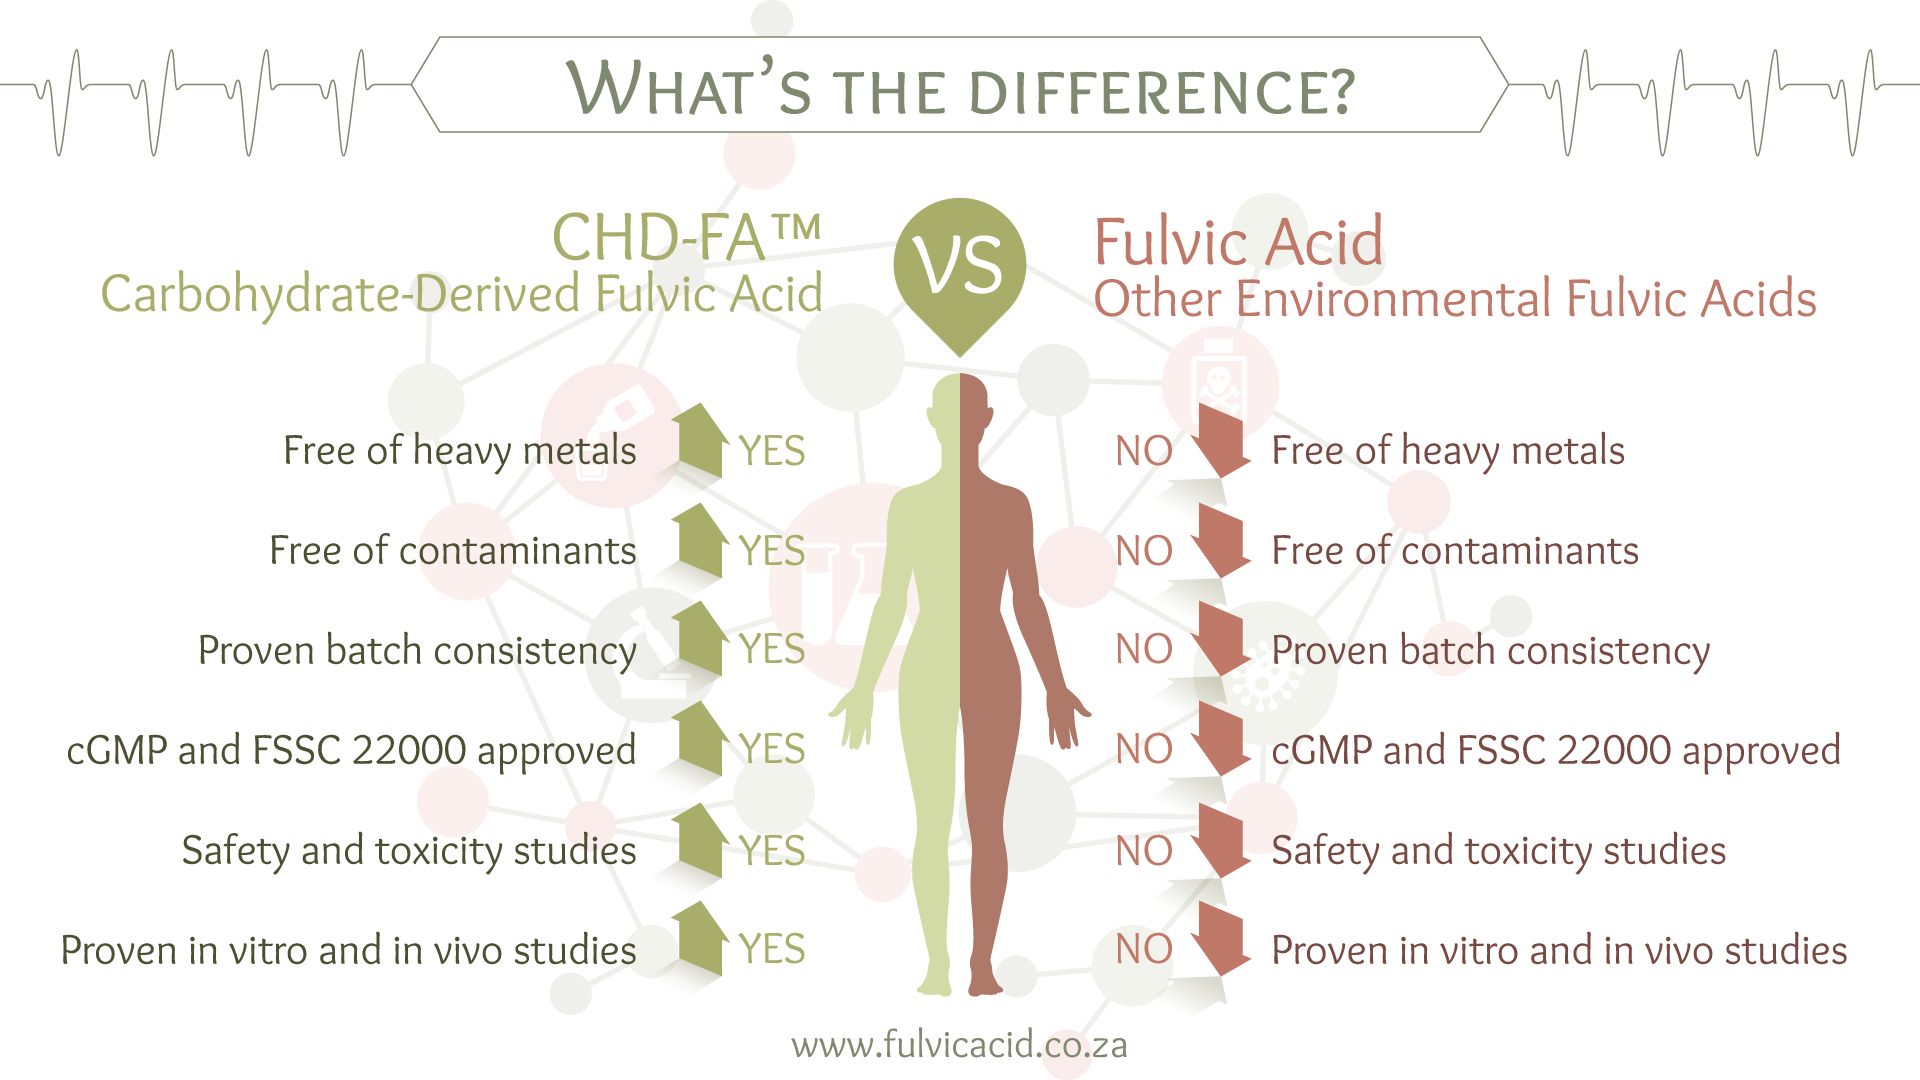 CHD-FA vs. Environmental Fulvic Acid